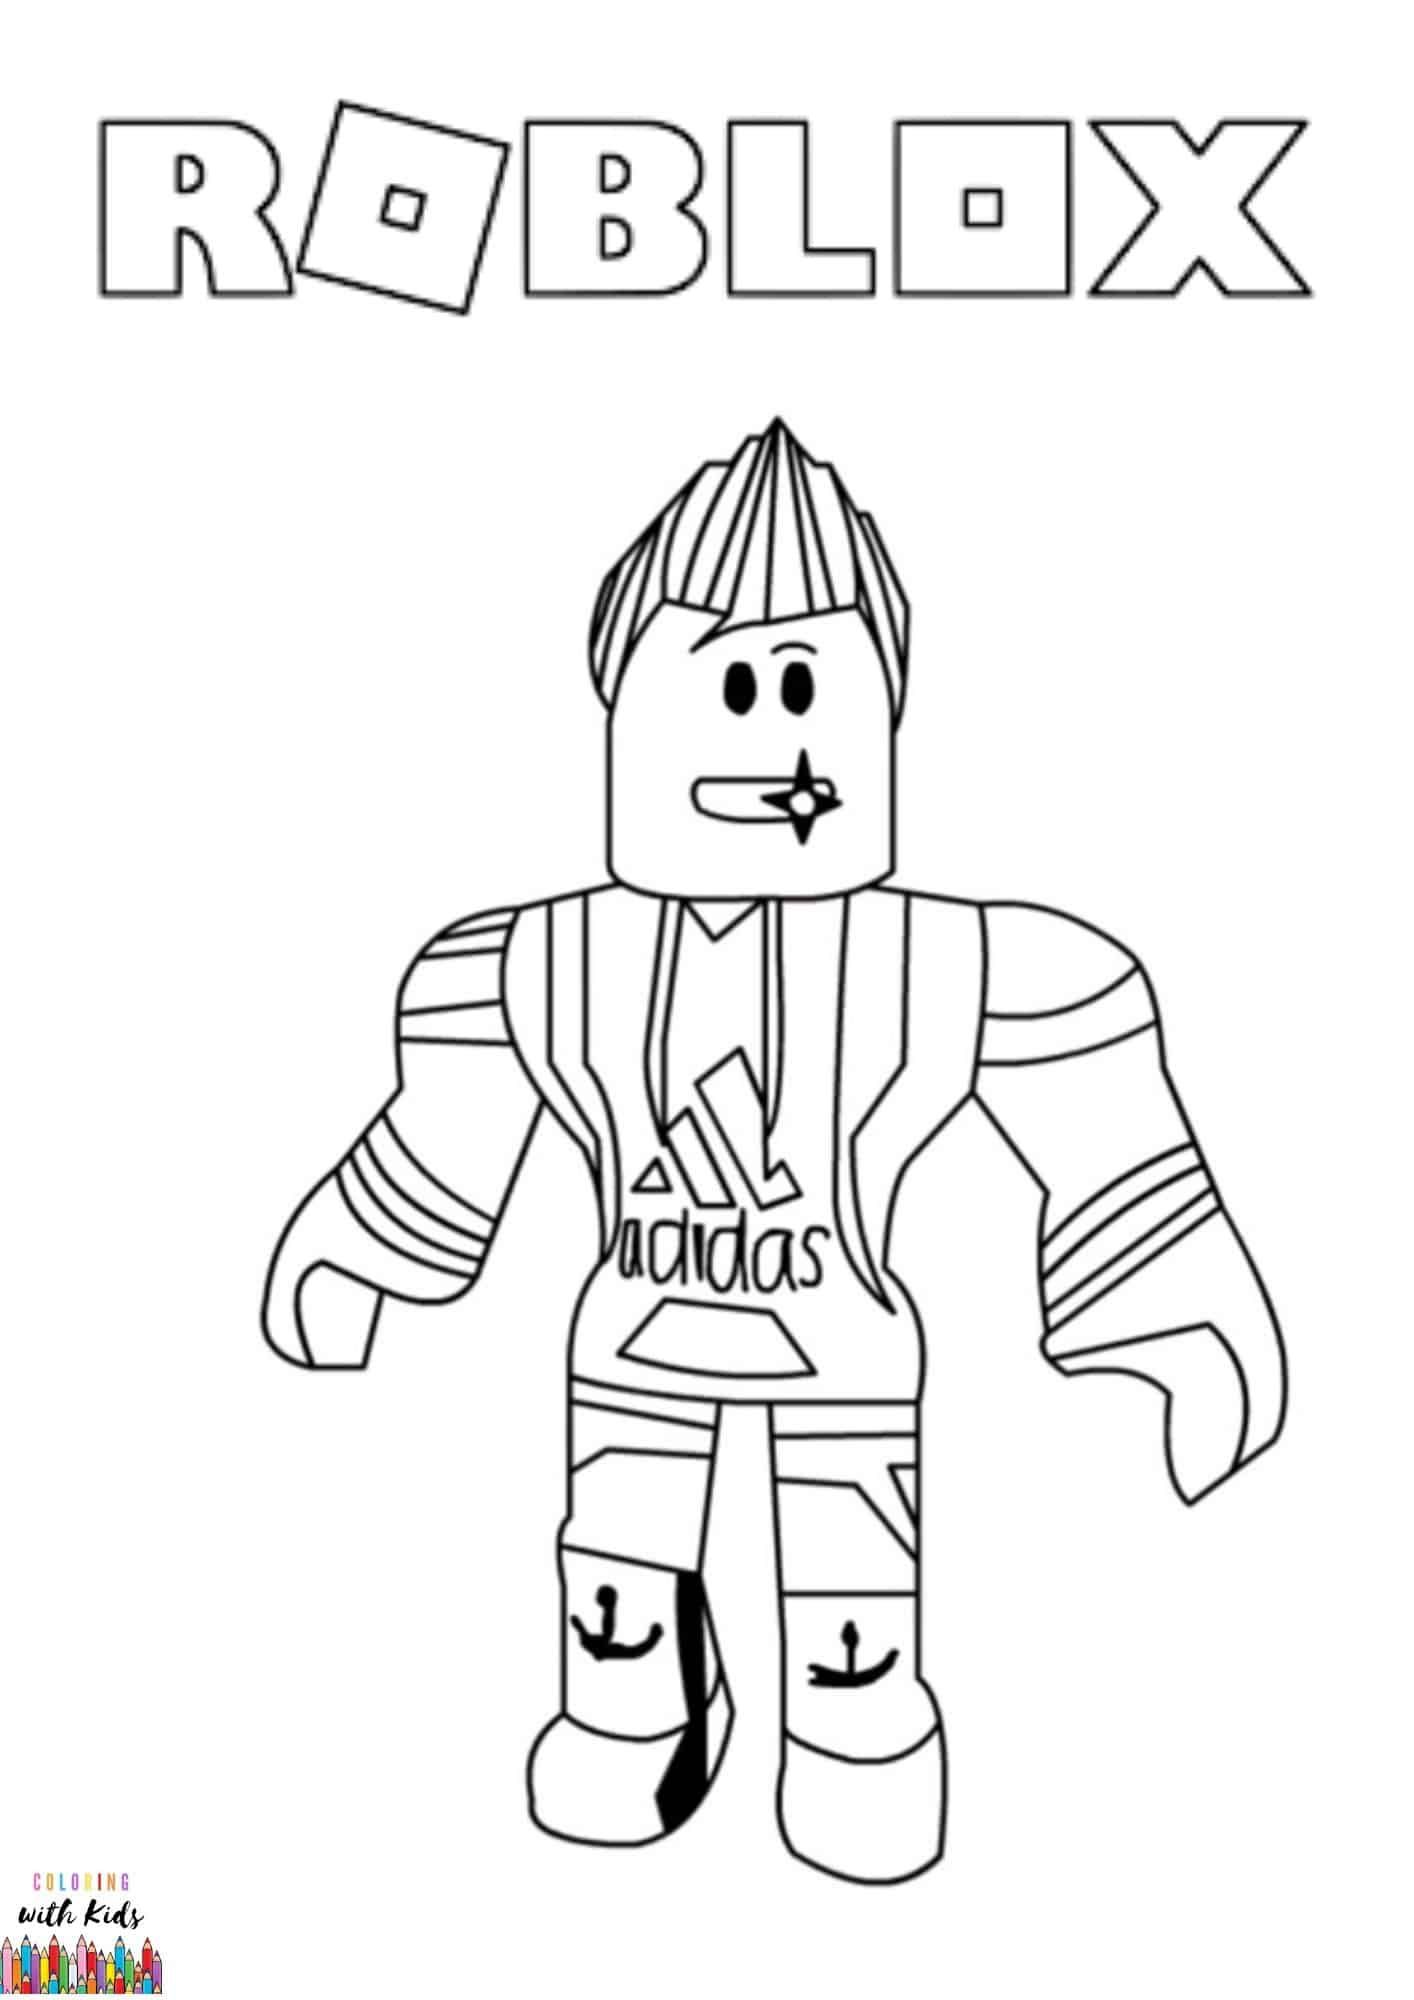 Roblox Avatar Drawing Coloring Page Image Credit Roblox Avatar Drawing By Yadia Chenia Permission For P Roblox Coloring Pages Coloring Pages For Boys